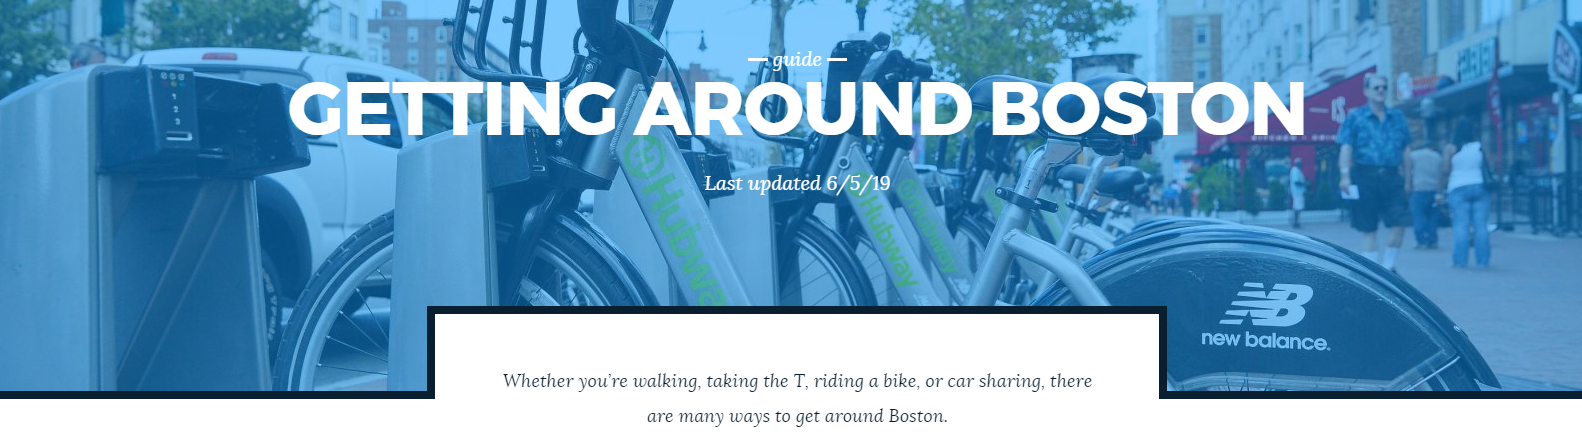 Getting Around Boston Guide